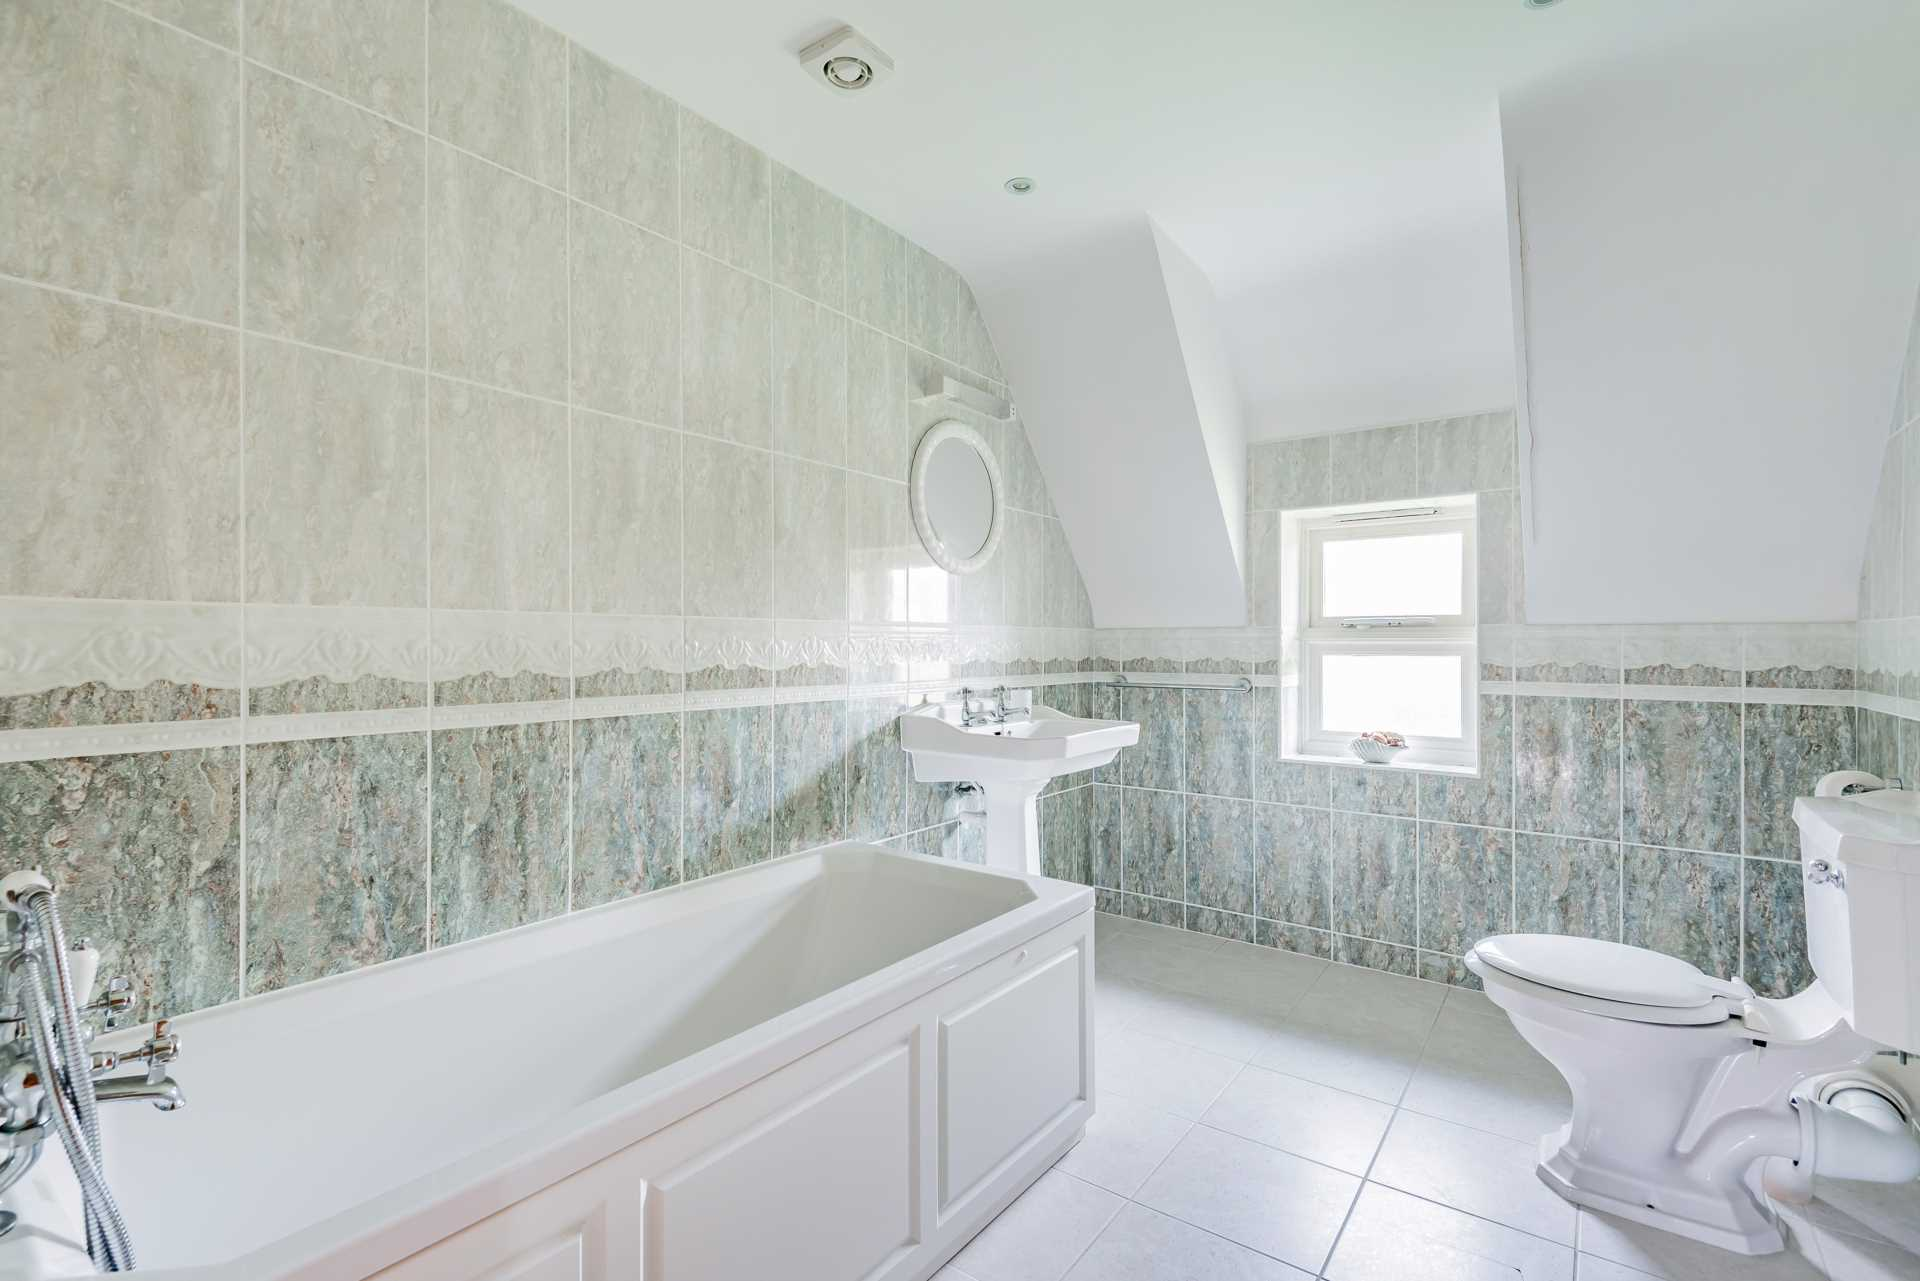 4 bed detached house for sale in Wagtails, Whatcombe Lane, Winterborne Whitechurch, Blandford Forum  - Property Image 24